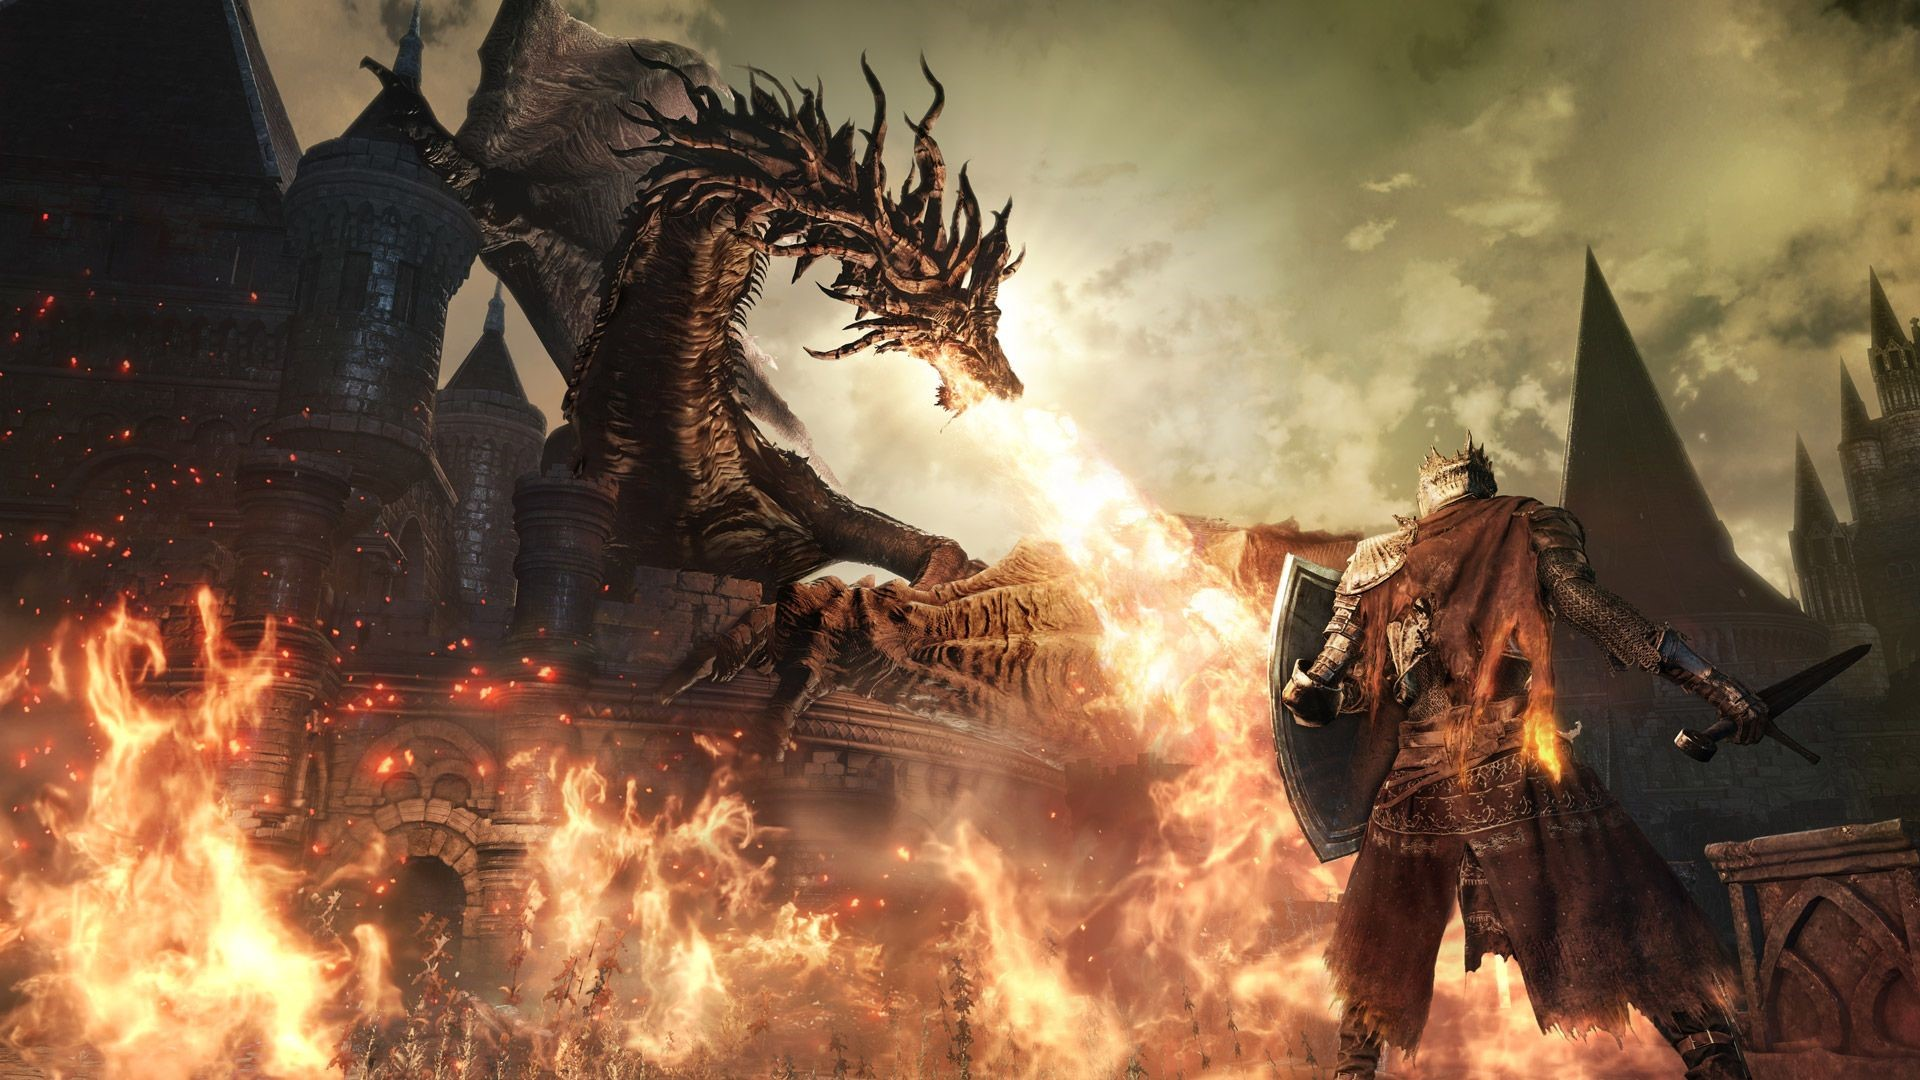 24 Tips For Dark Souls 3 Mmorpg Com I am honored to serve. 24 tips for dark souls 3 mmorpg com